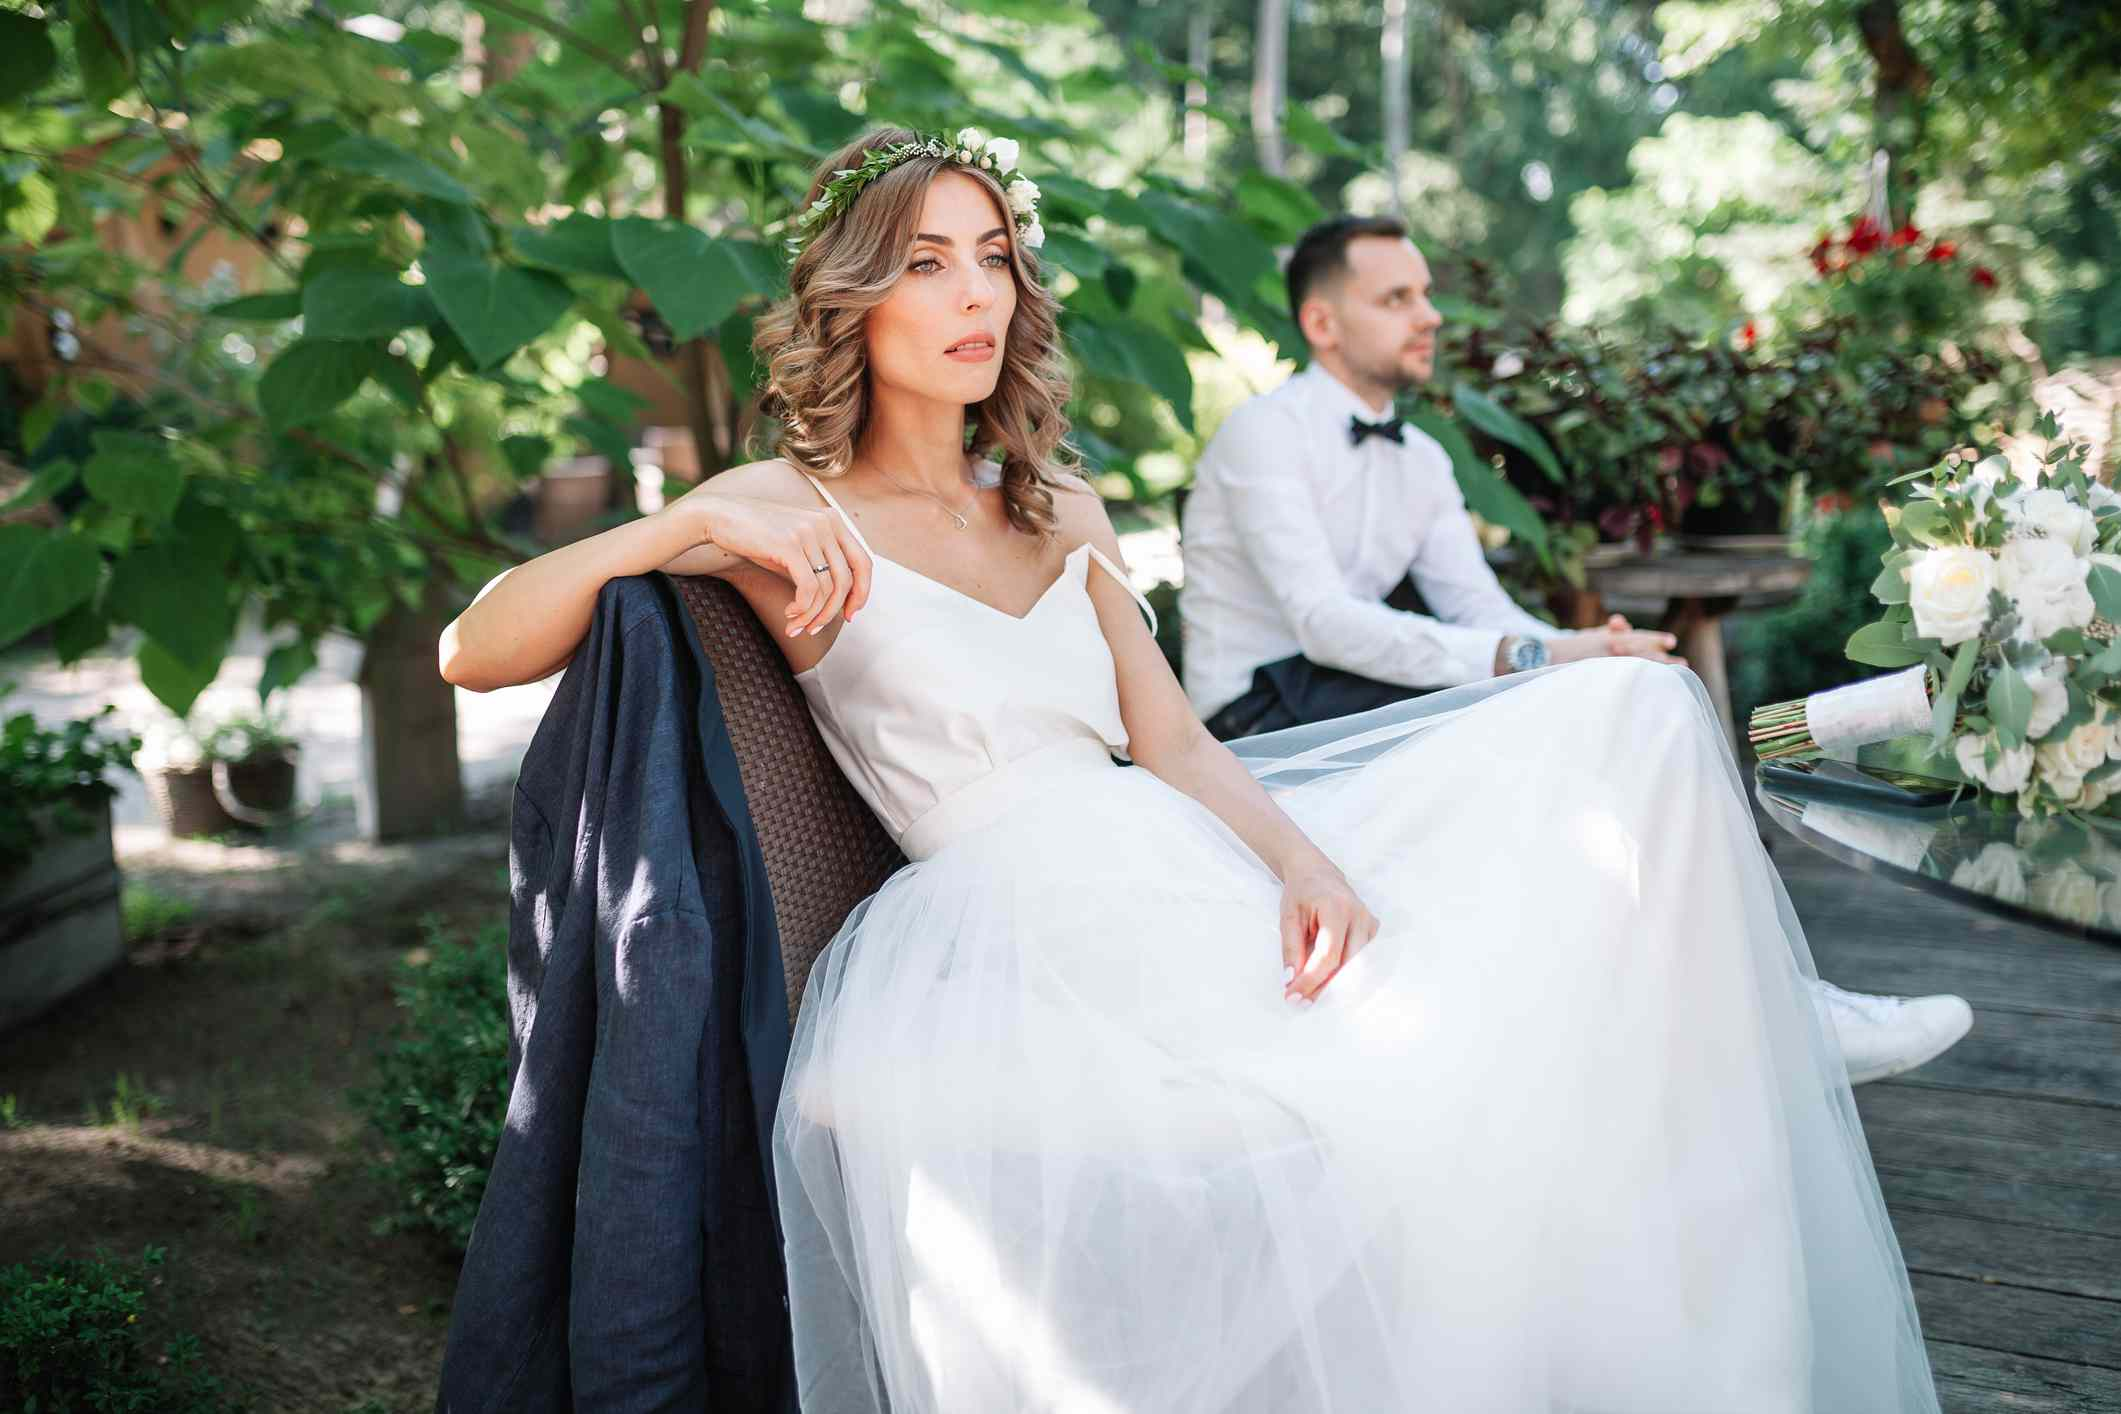 Bride annoyed with groom